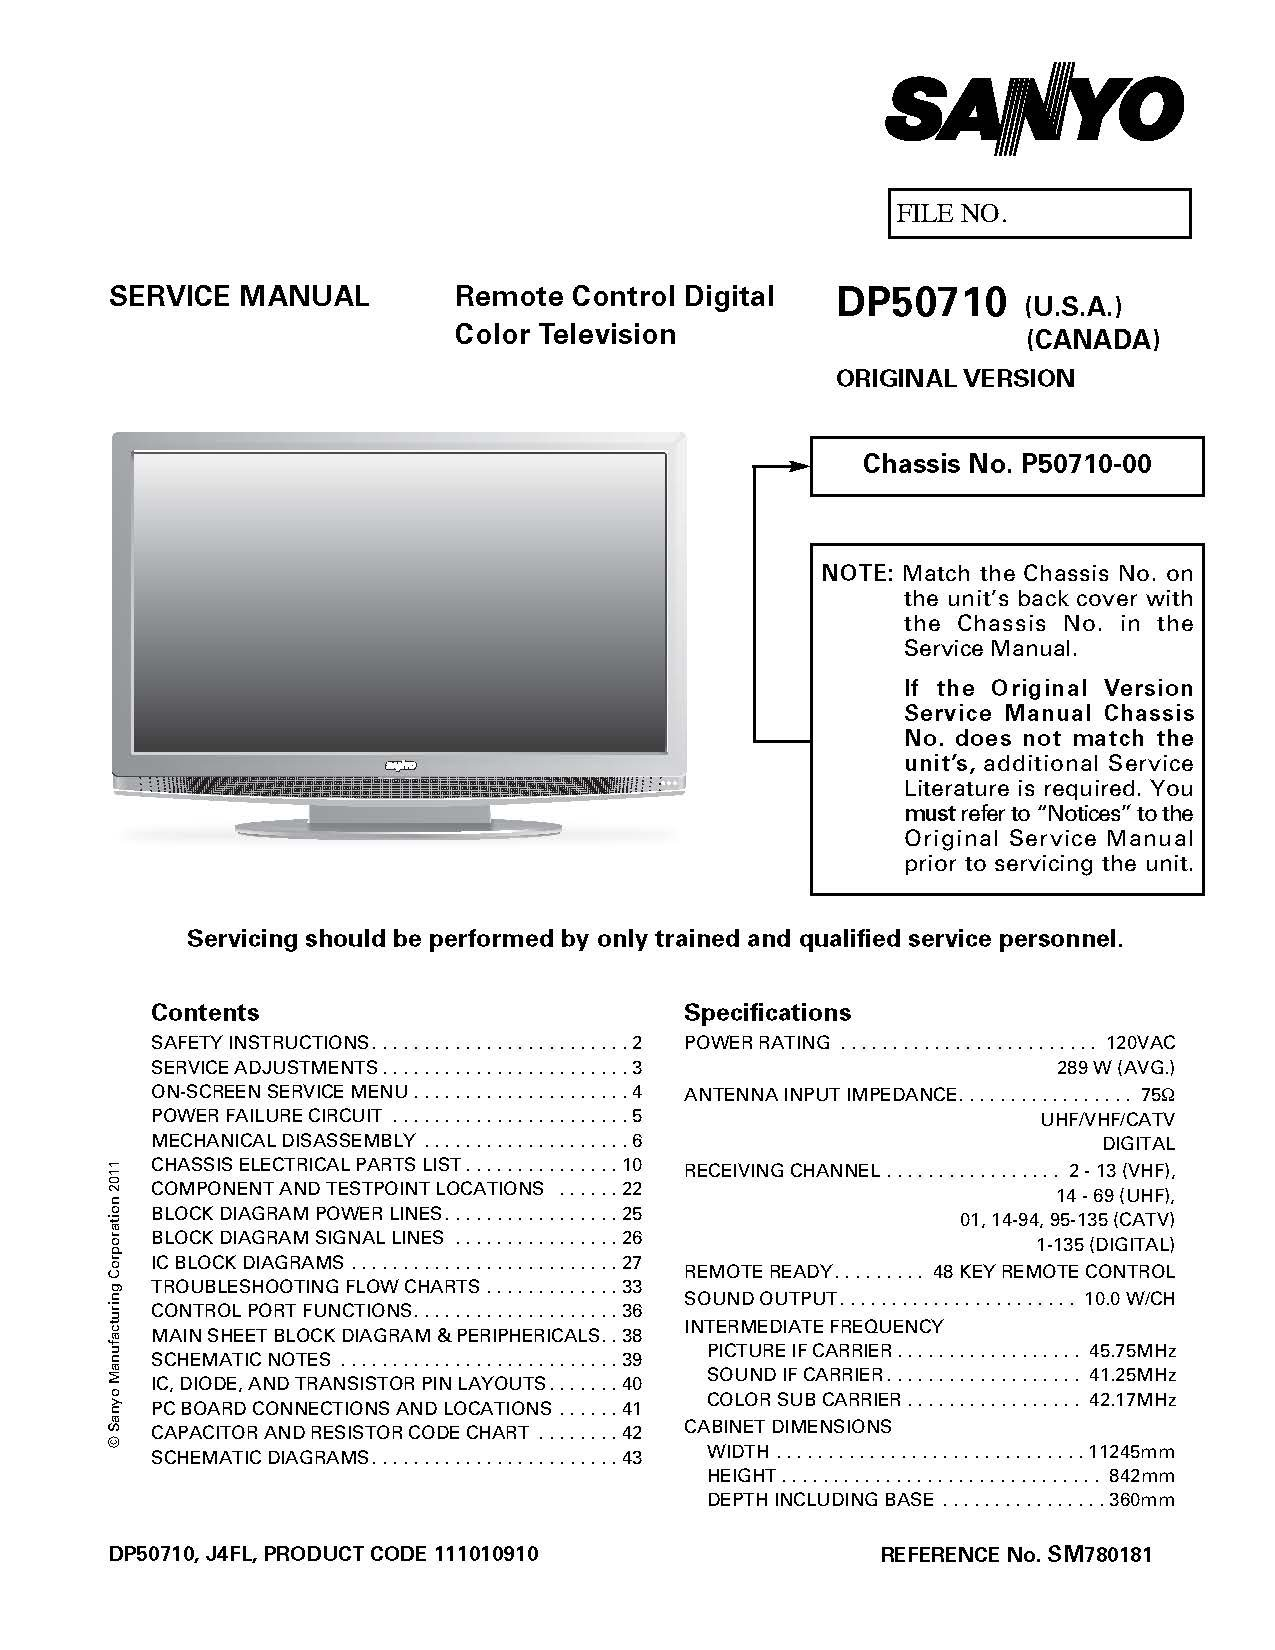 sanyo dp50710 service manual with schematics sanyo amazon com books rh amazon com Sanyo Microwave Oven Manual Owner Manuals for Sanyo DP32648